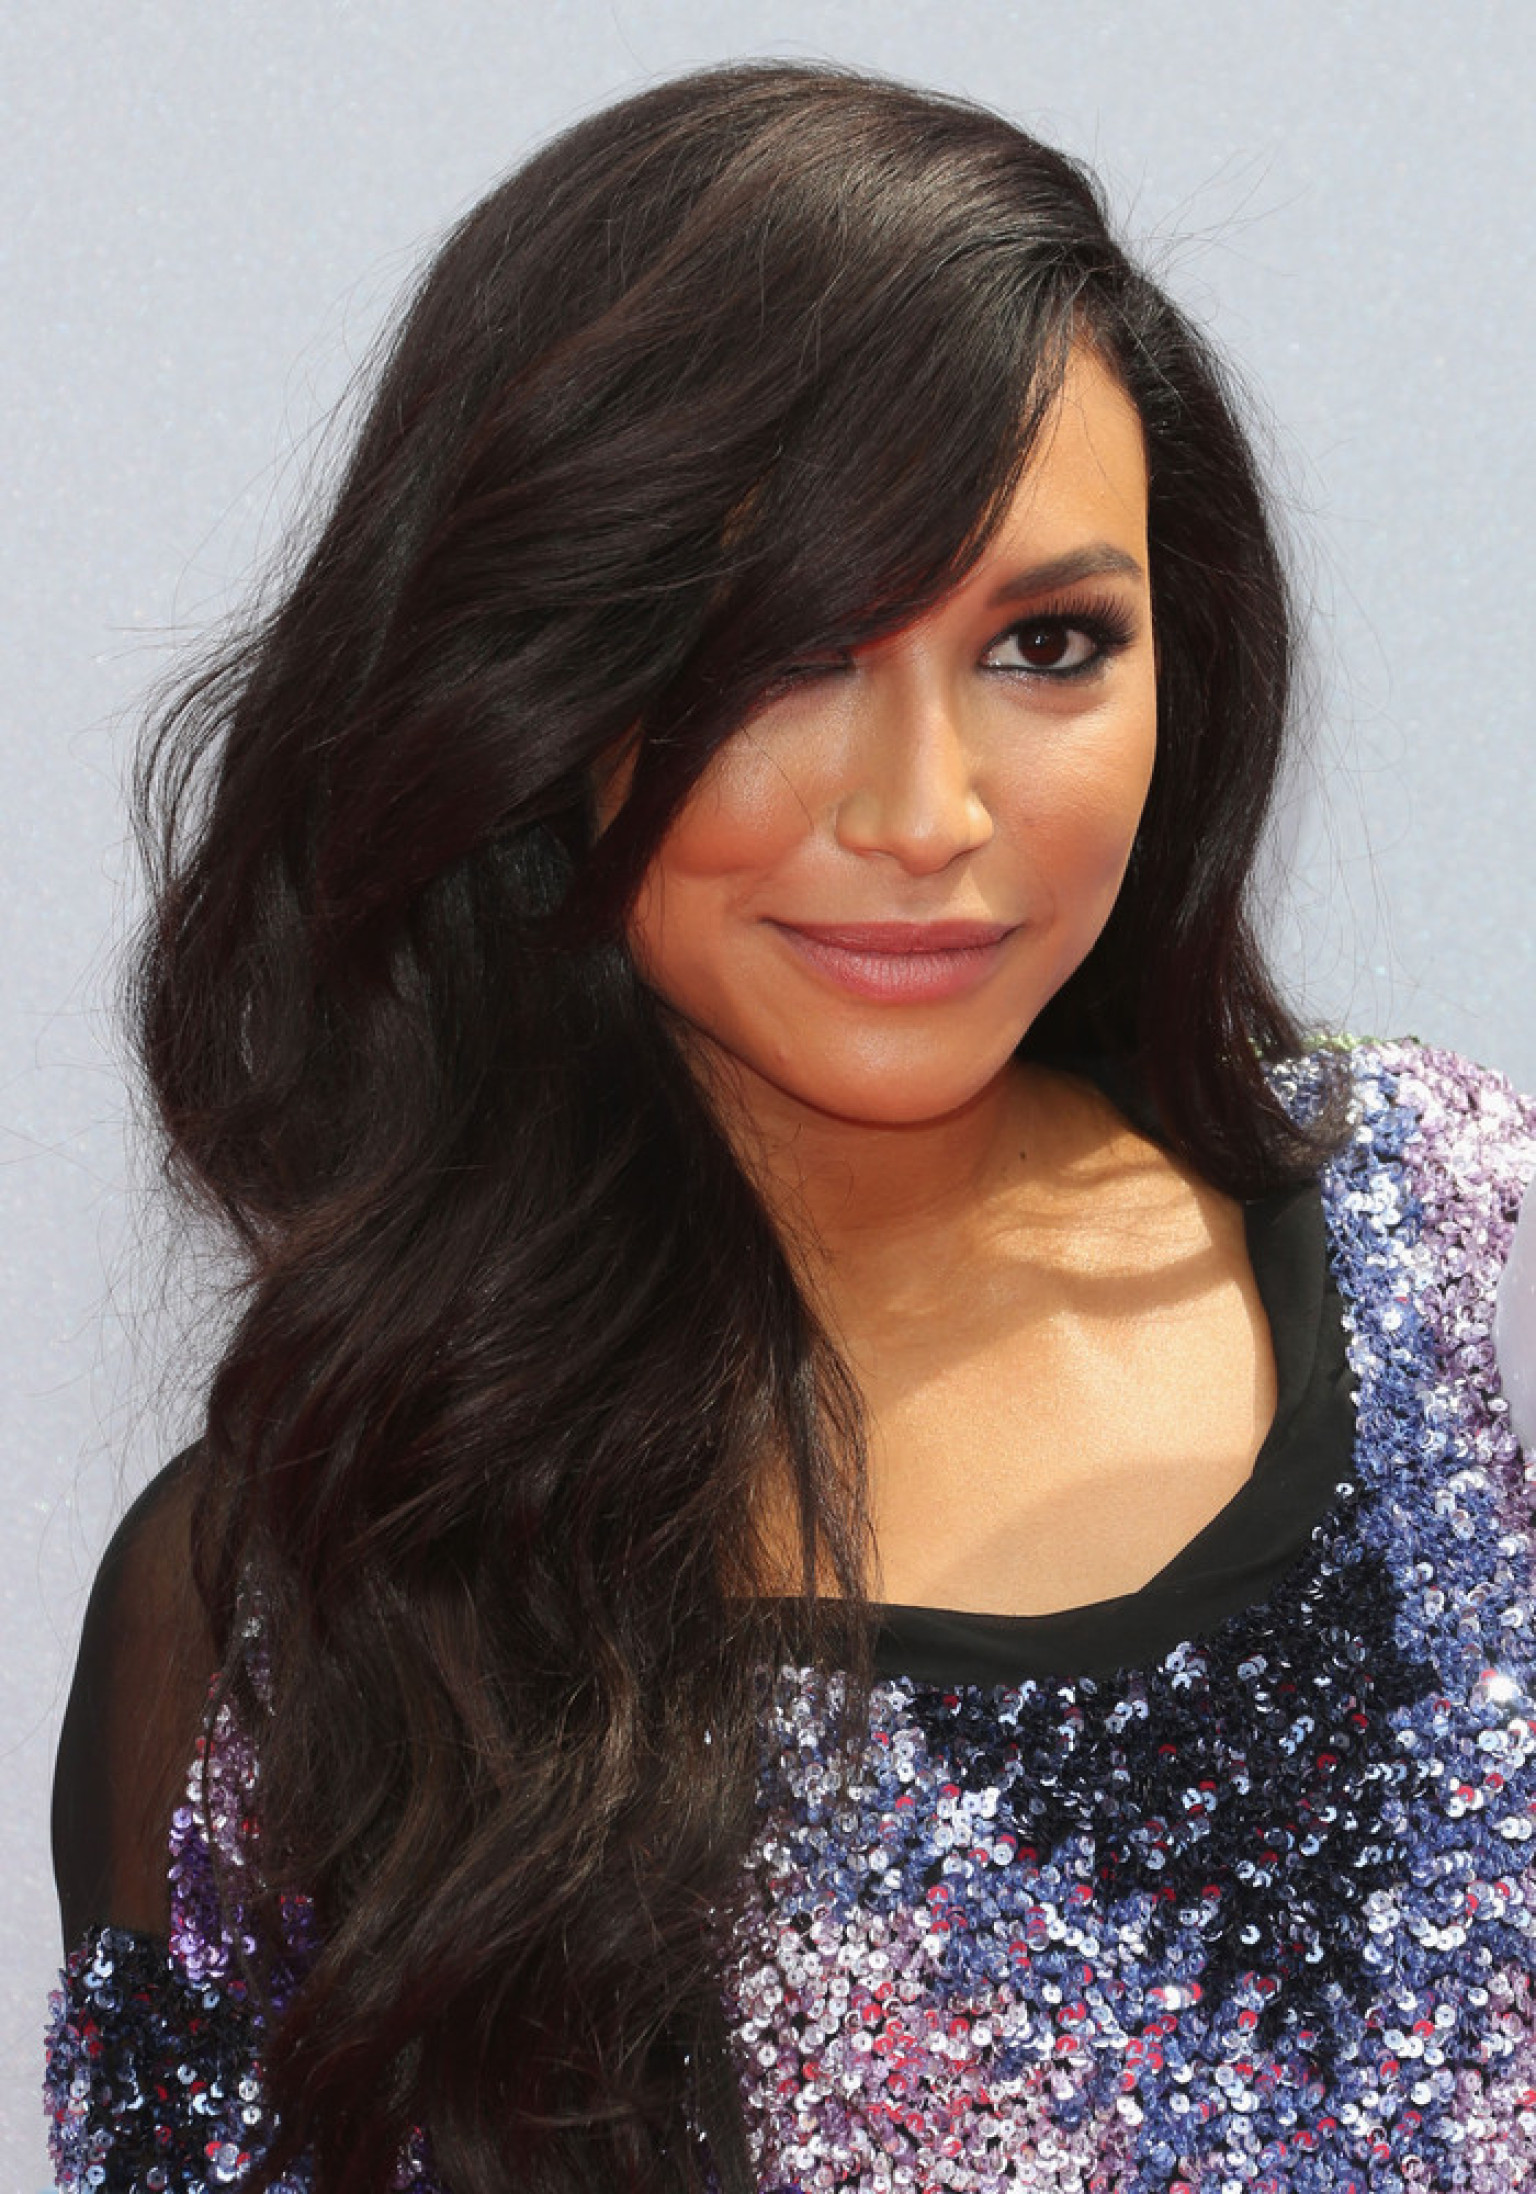 naya riveras bet awards dress shows off her toned legs